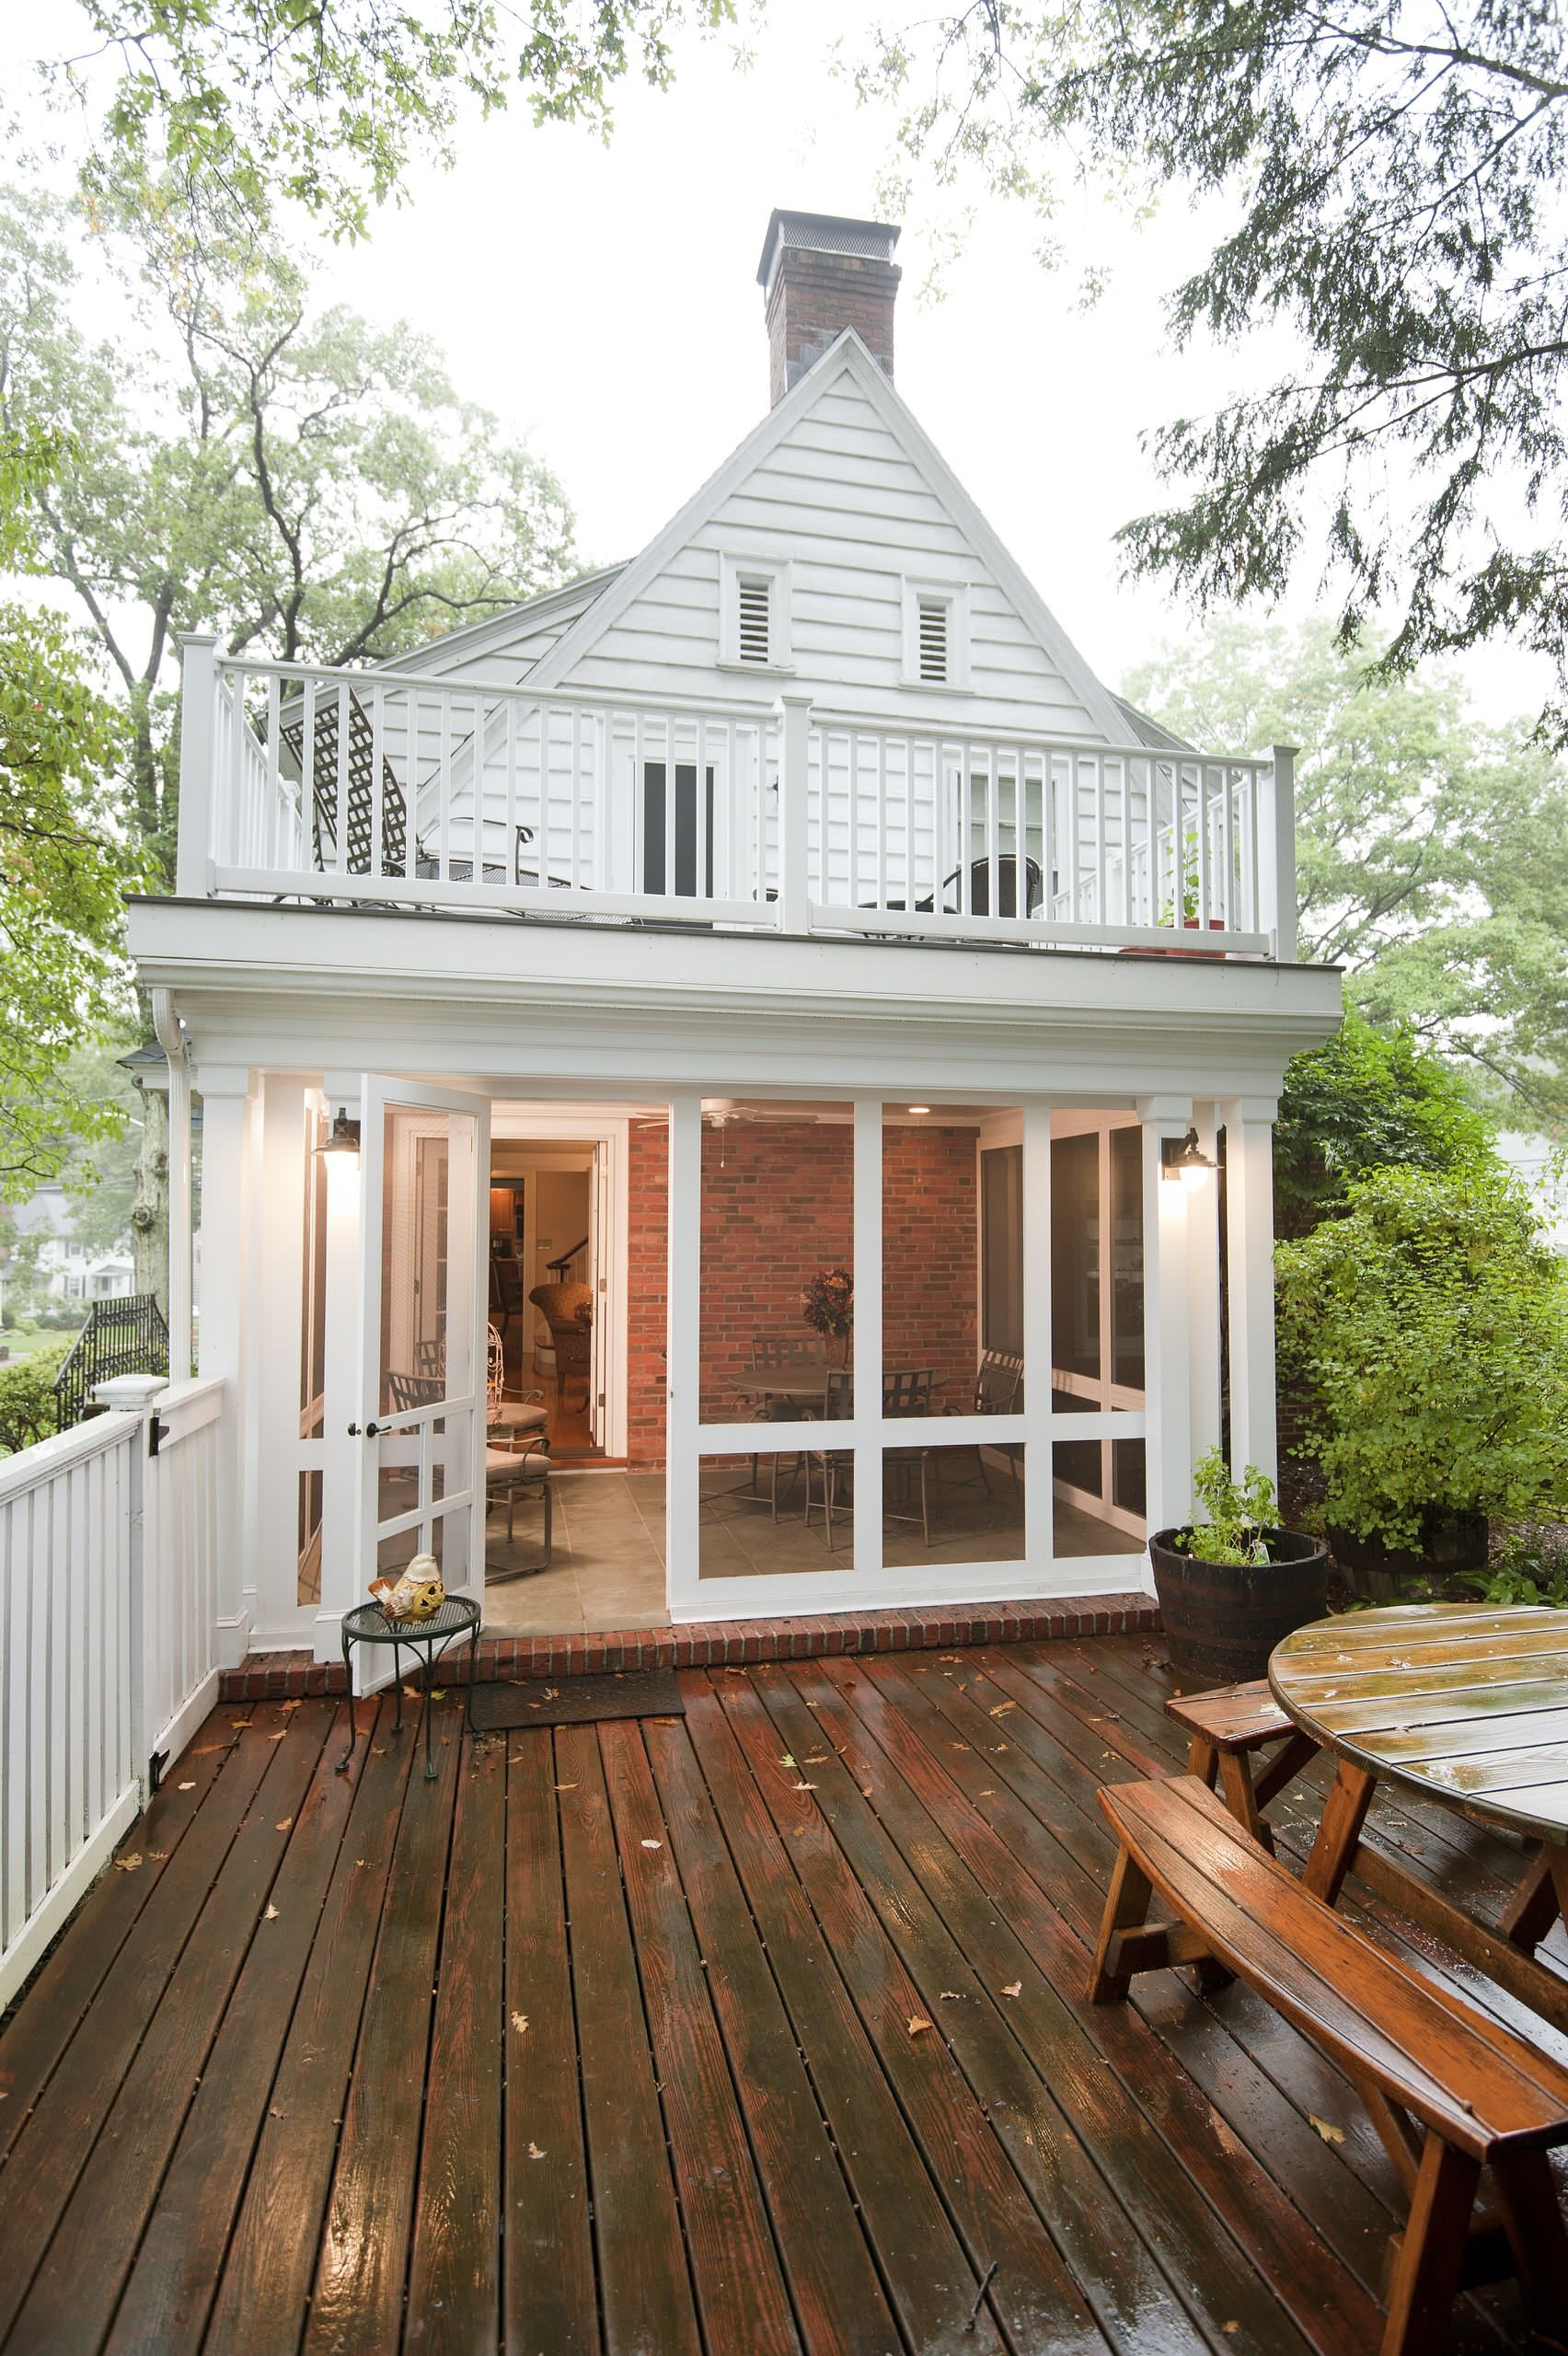 Front Porch Remodel Porch Remodel Front Porch Addition: Porch Enclosed Front Ideas With Stunning Views Of Surrounding: Wood Deck And Deck Railings Also